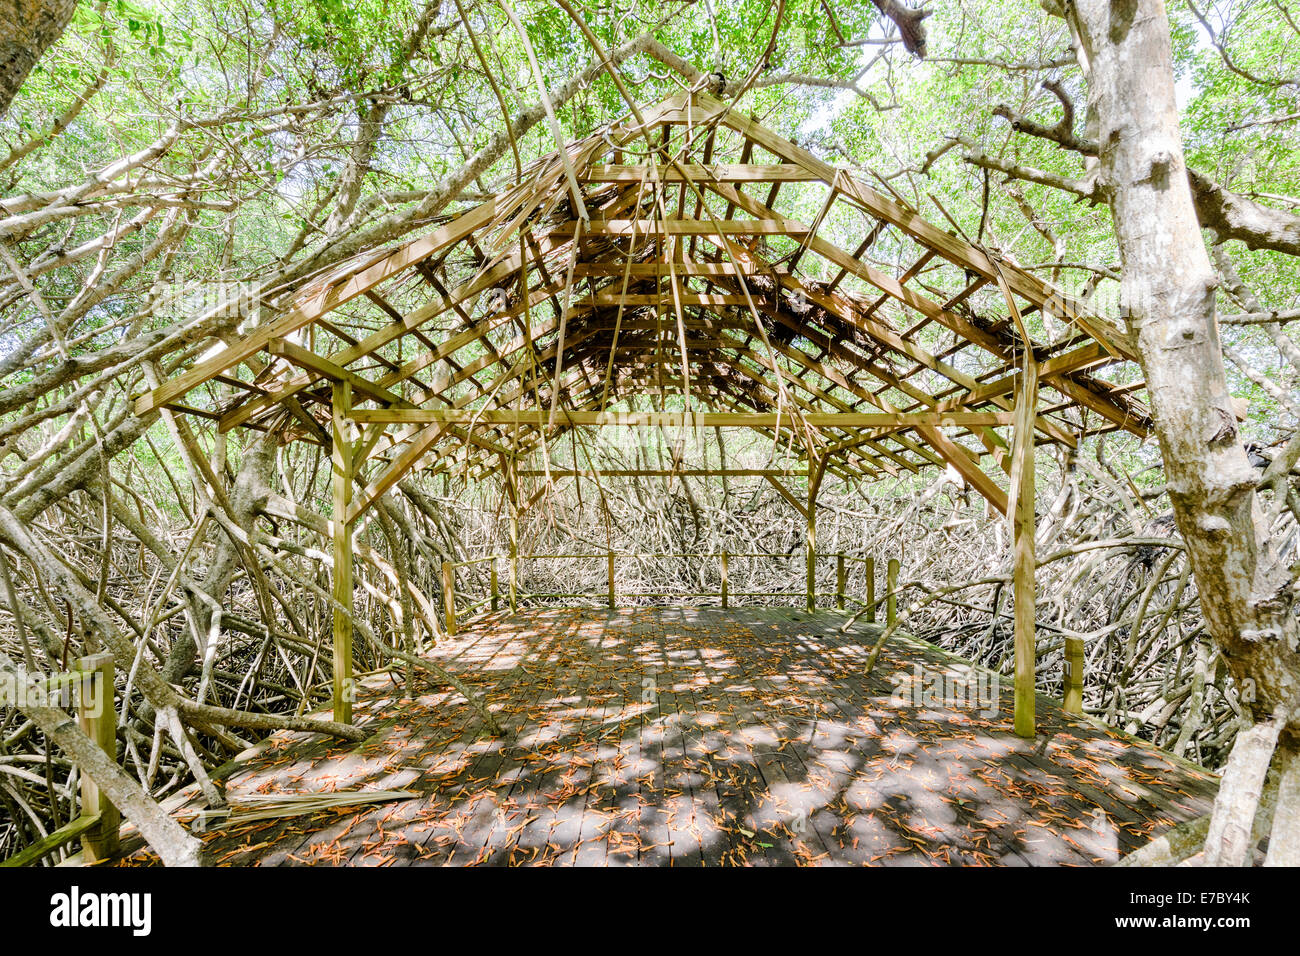 A bandstand in the mangrove forest of Petit Trou Lagoon near the Tobago Plantations Resort. Stock Photo